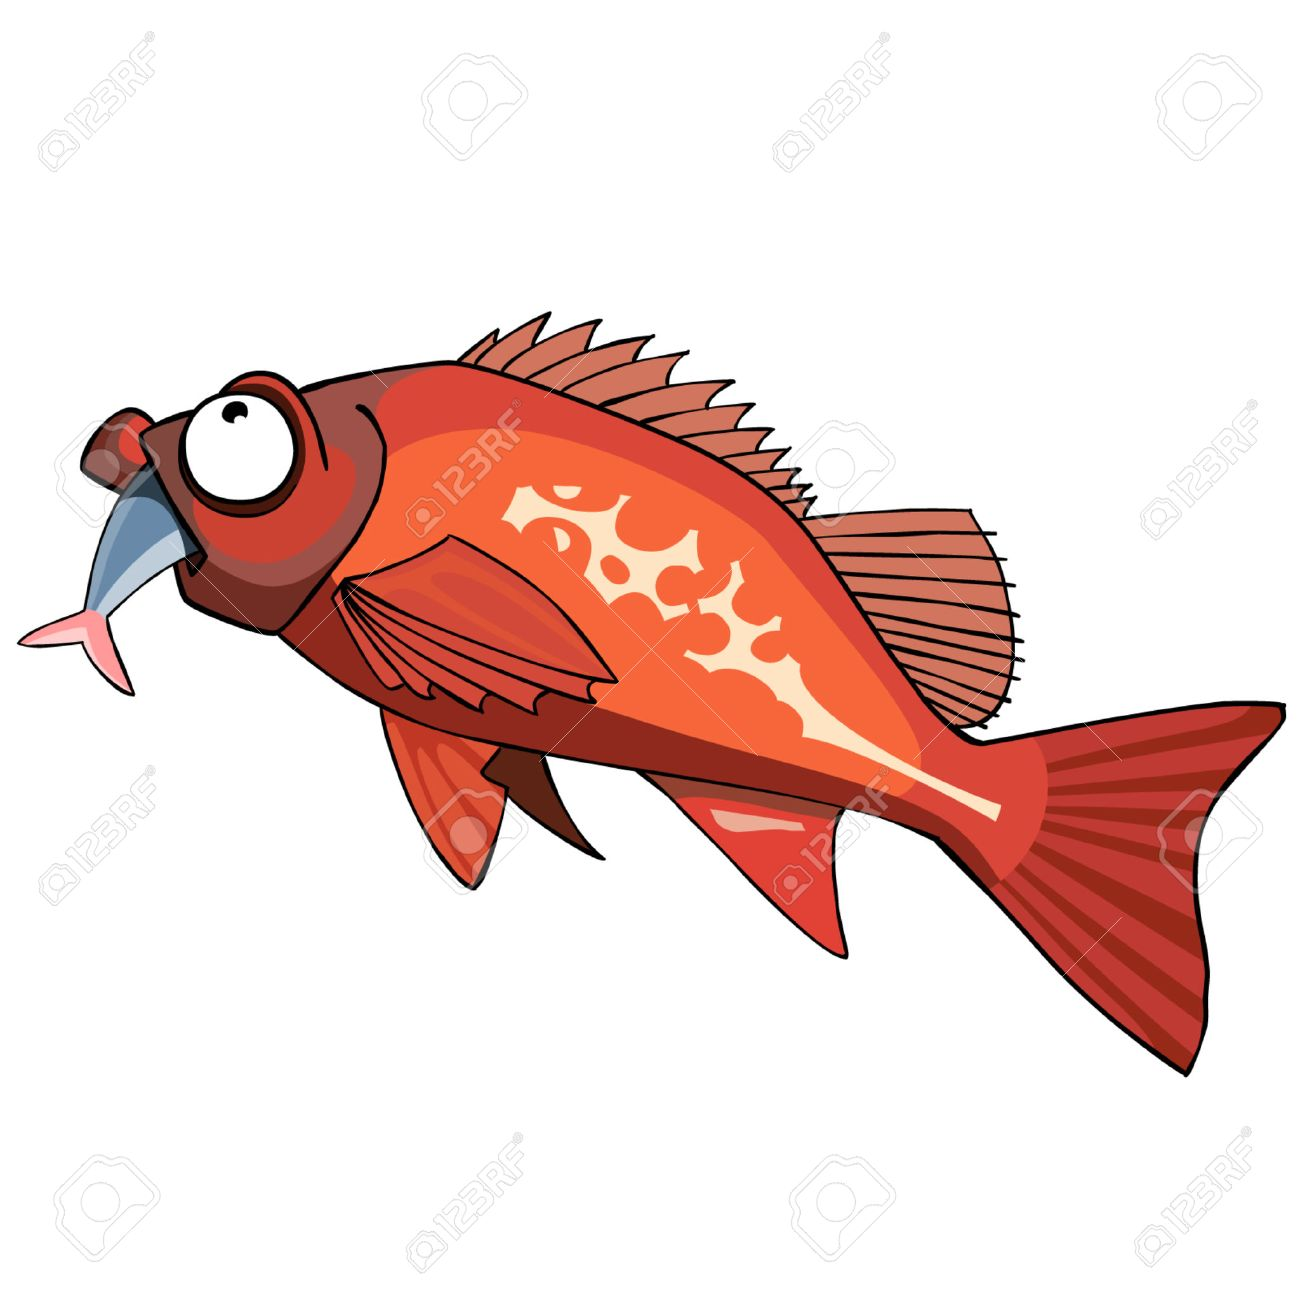 Fish Eating Fish Cartoon Cartoon Red Grouper Fish